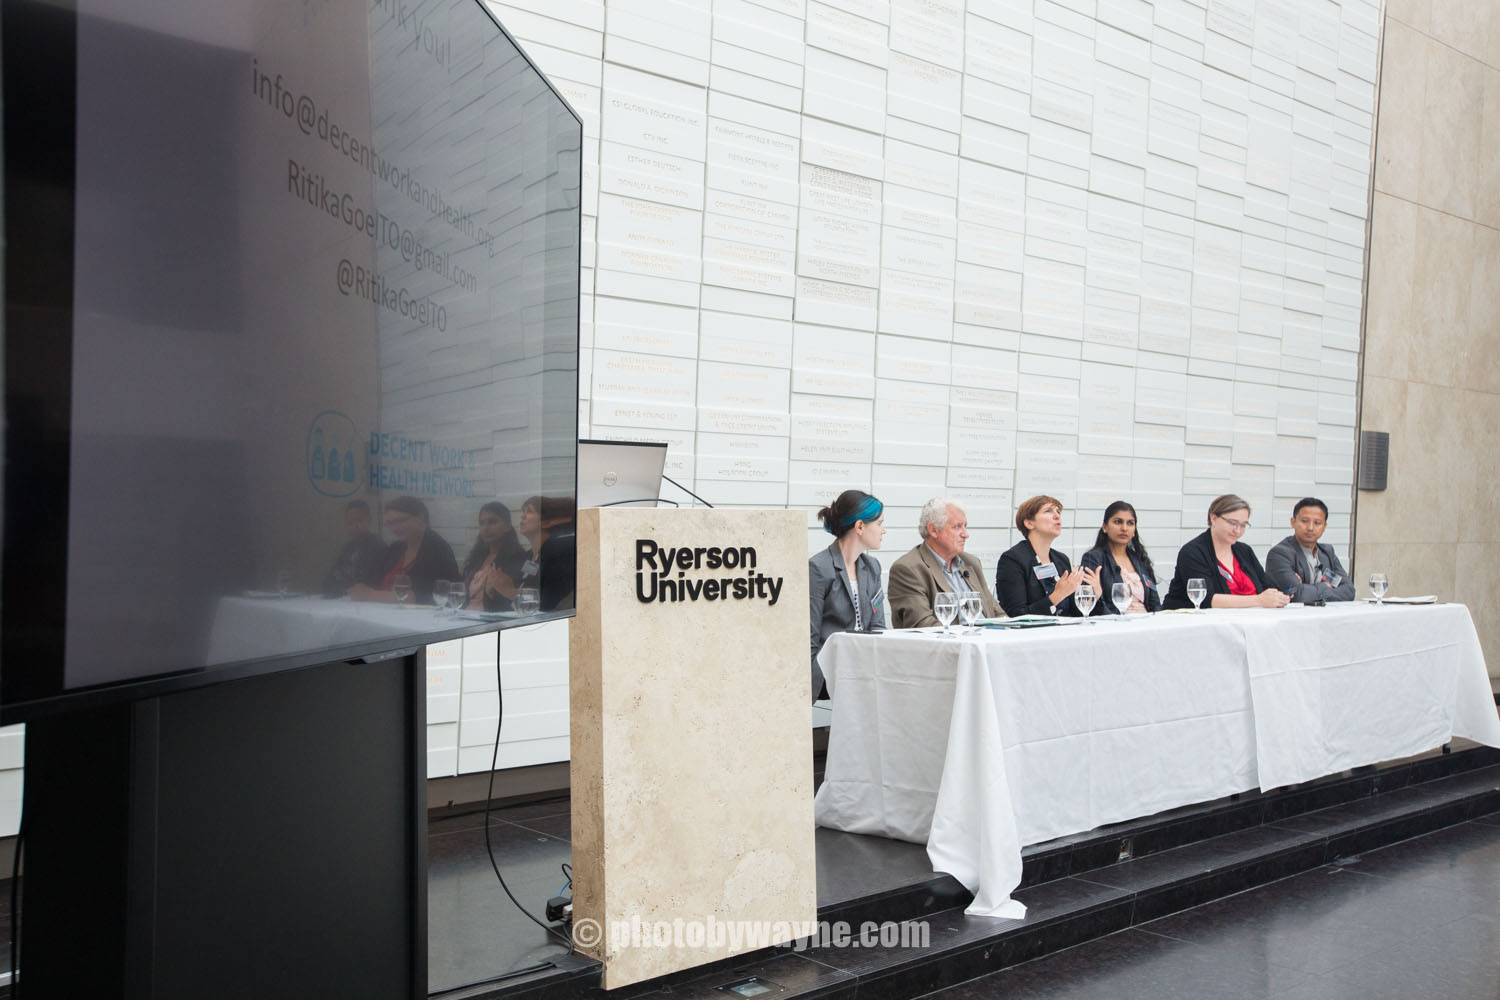 conference-panel-discussion-at-ryerson-university.jpg